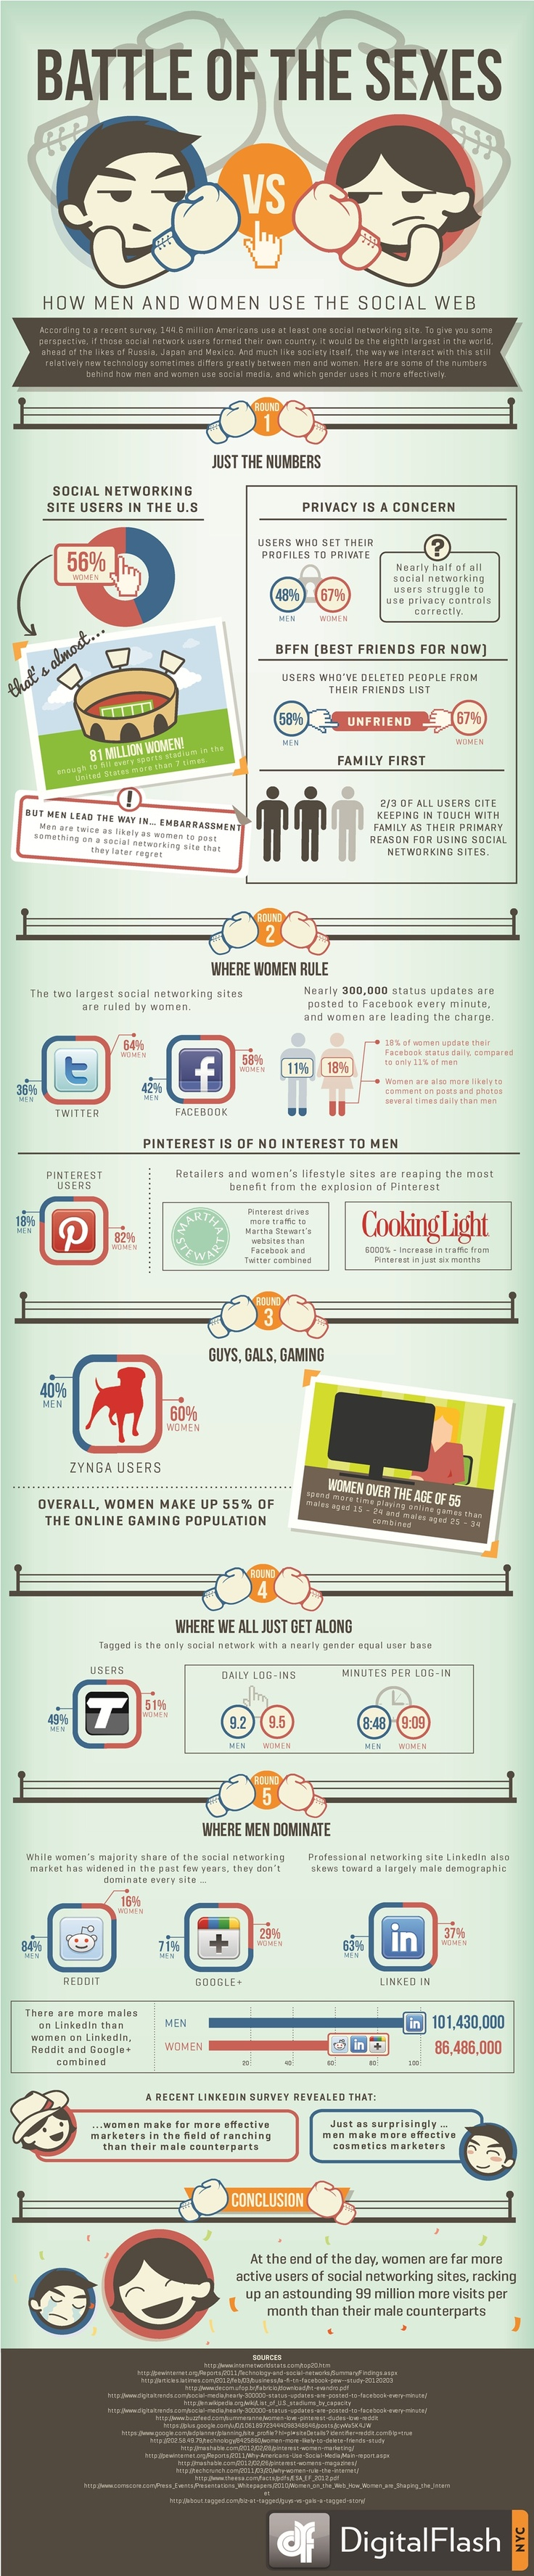 Battle Of The Sexes: How Men And Women Use The Social Web #infographic